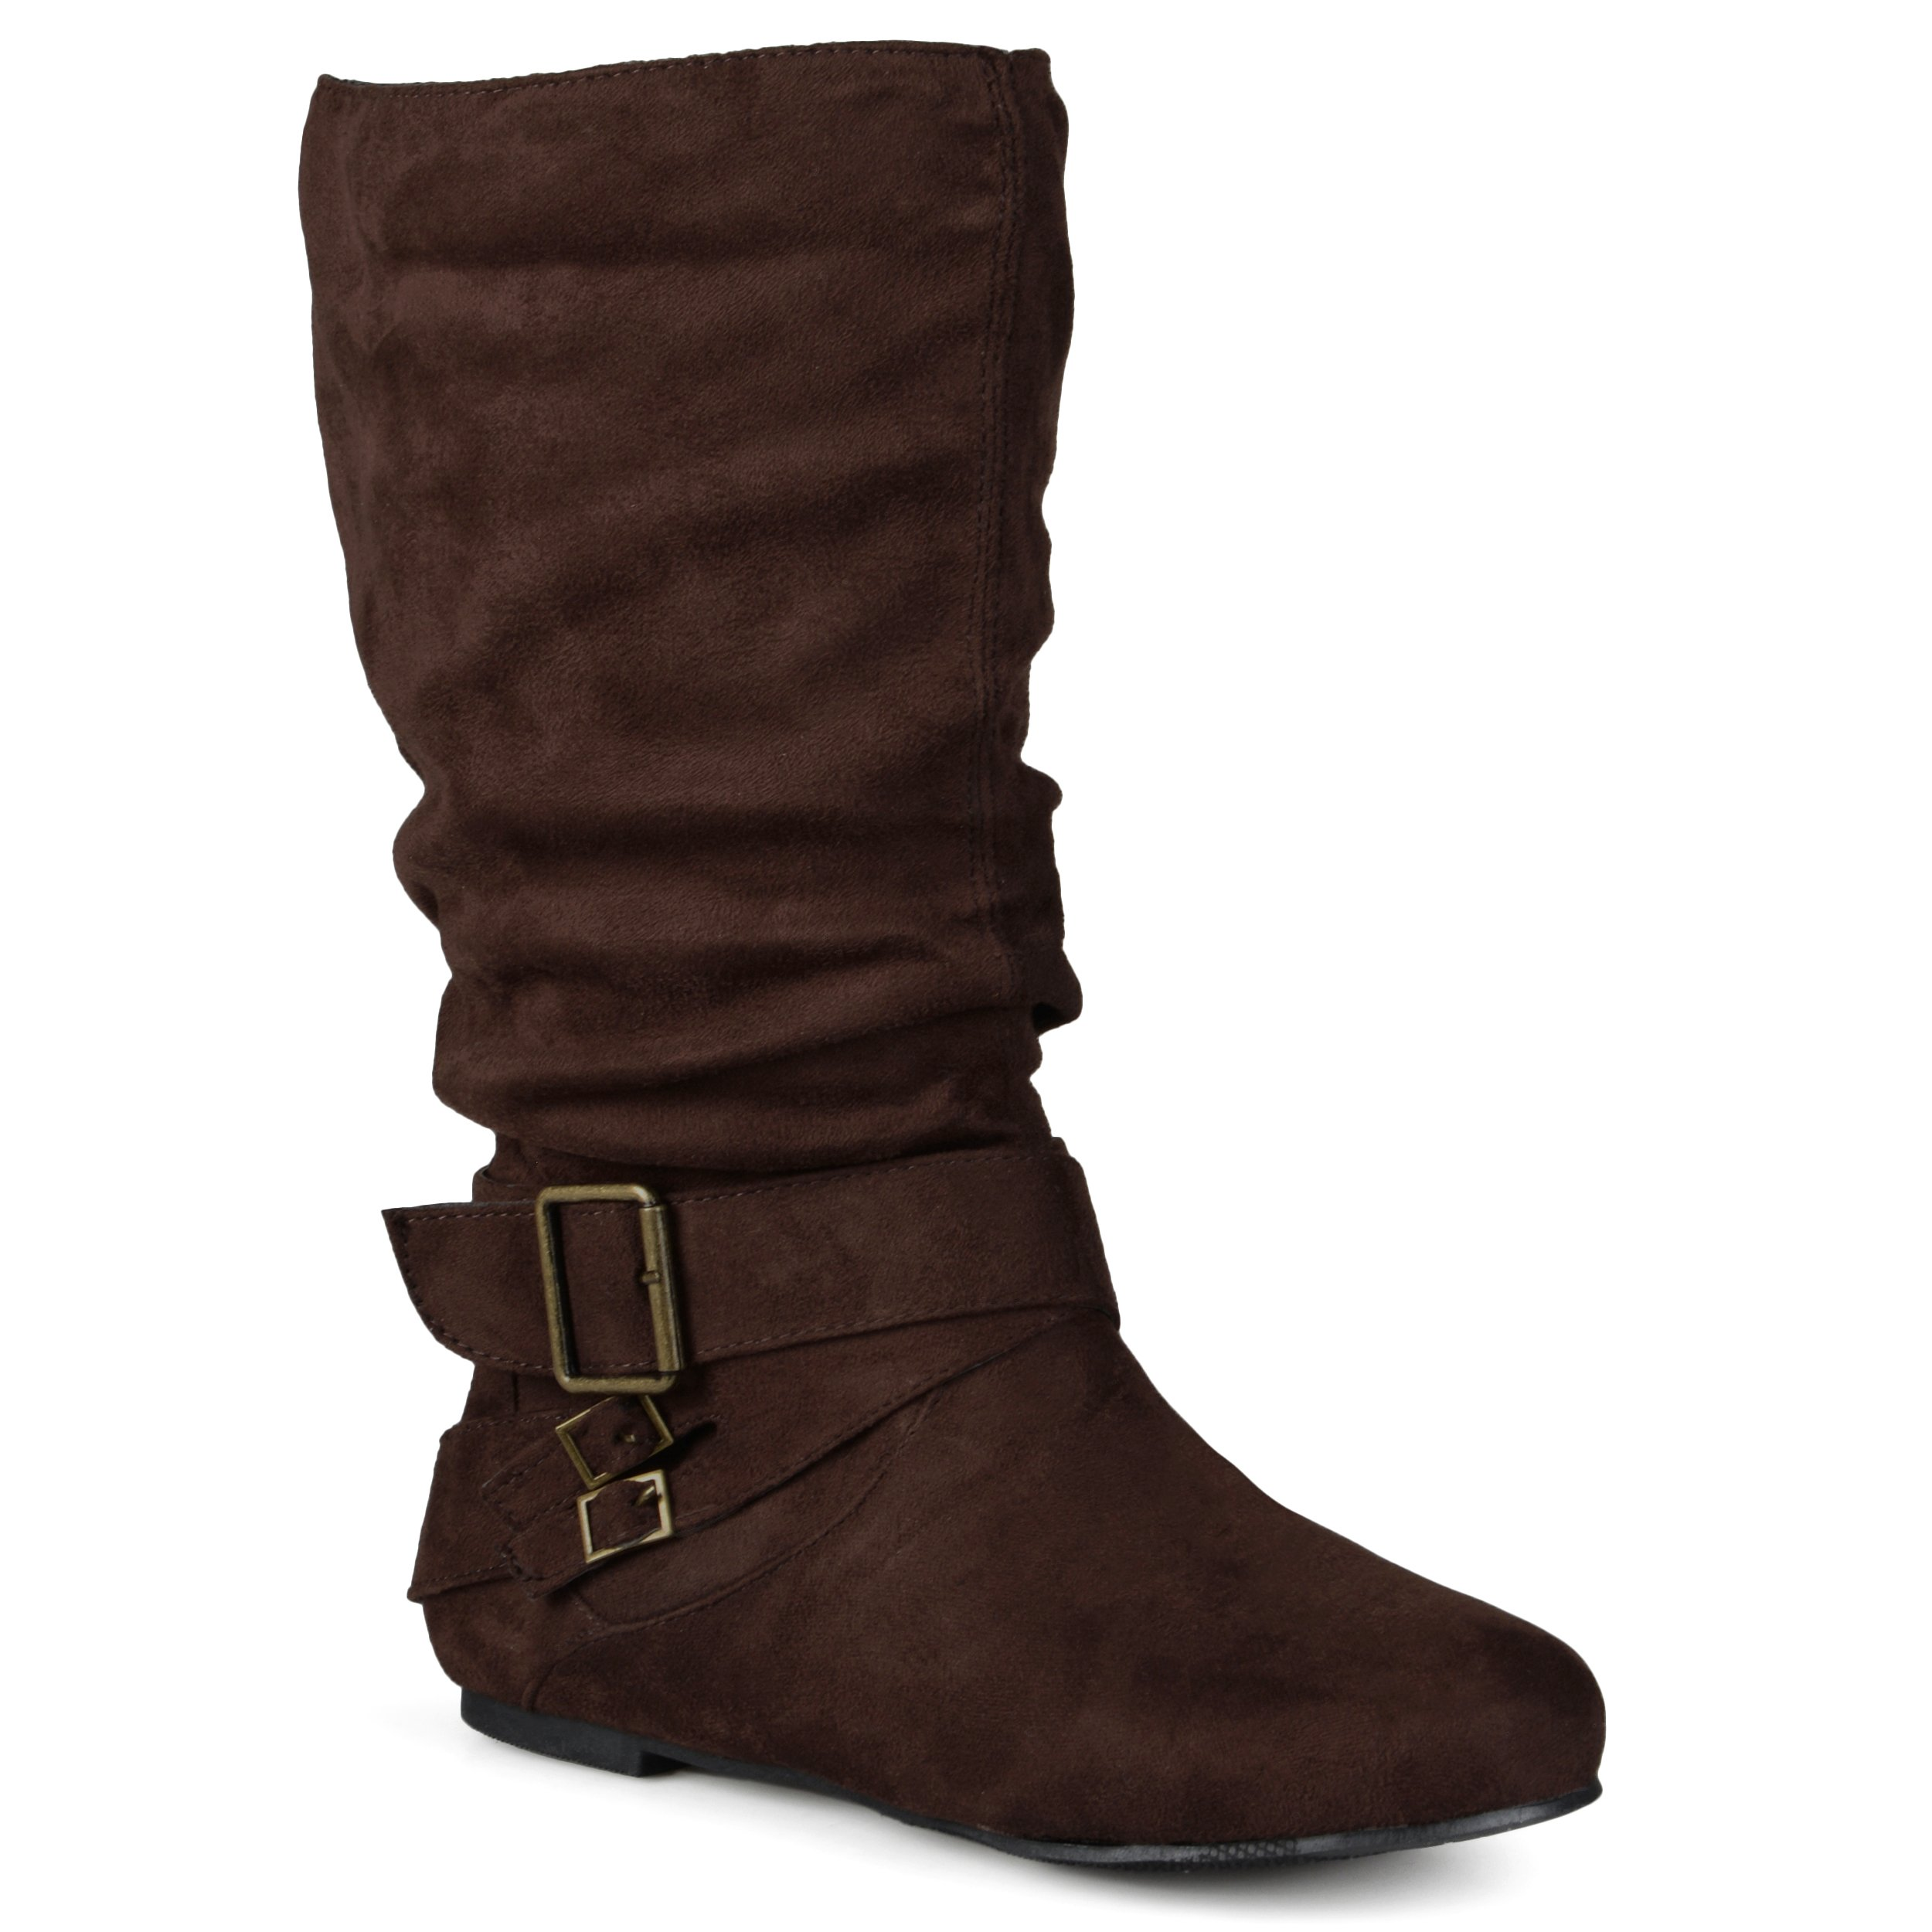 Journee Collection Womens Regular Sized and Wide-Calf Buckle Slouch Mid-Calf Boots Brown, 9.5 Wide Calf US